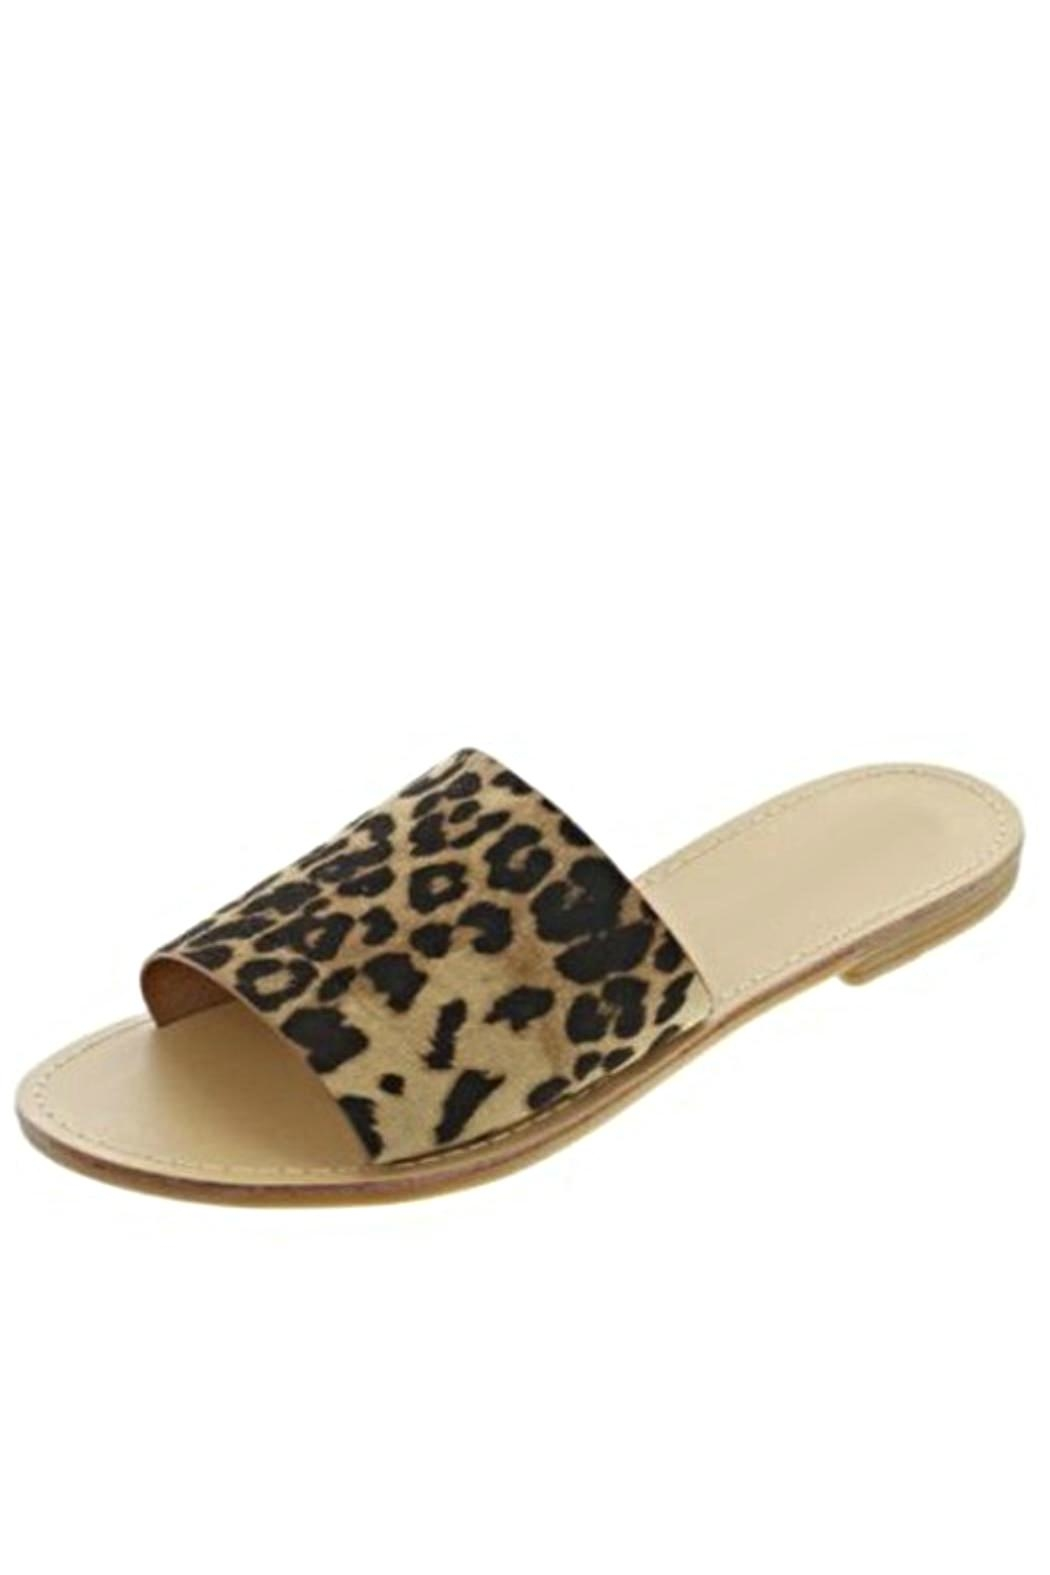 4d1be79adb8f Anna Shoes Leopard Print Slides from Texas by POE and Arrows ...